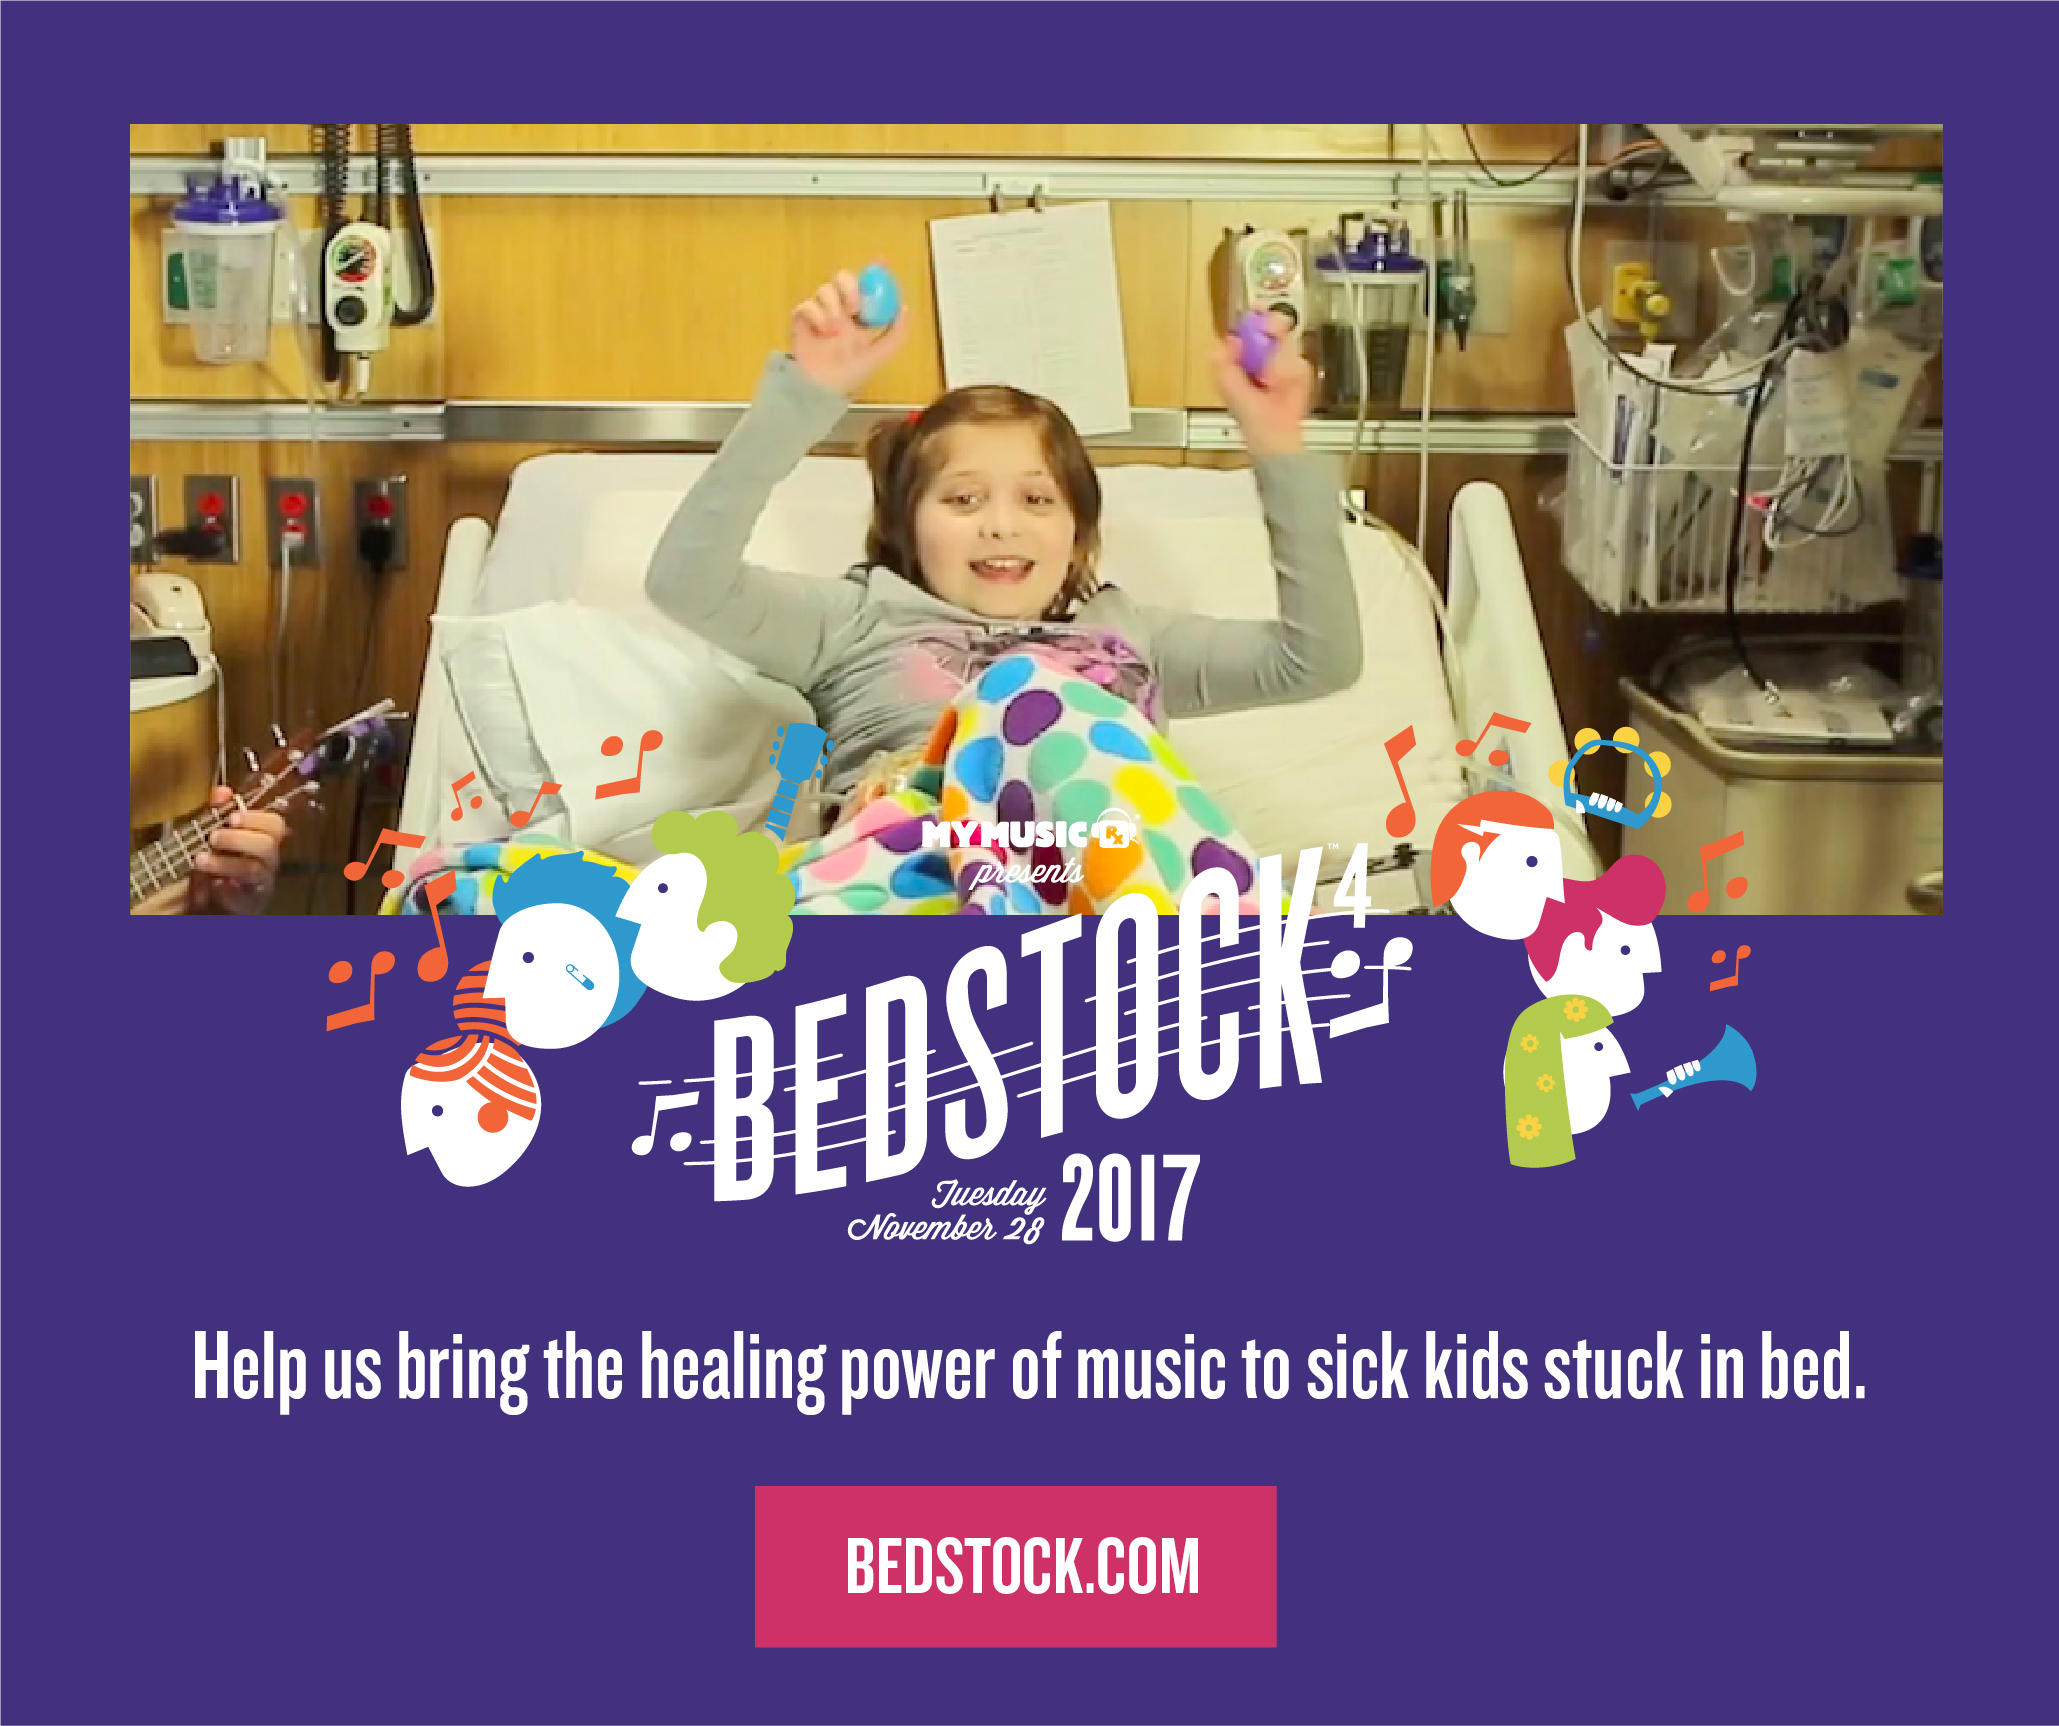 Rattletree performs for Bedstock benefit at ACL Festival